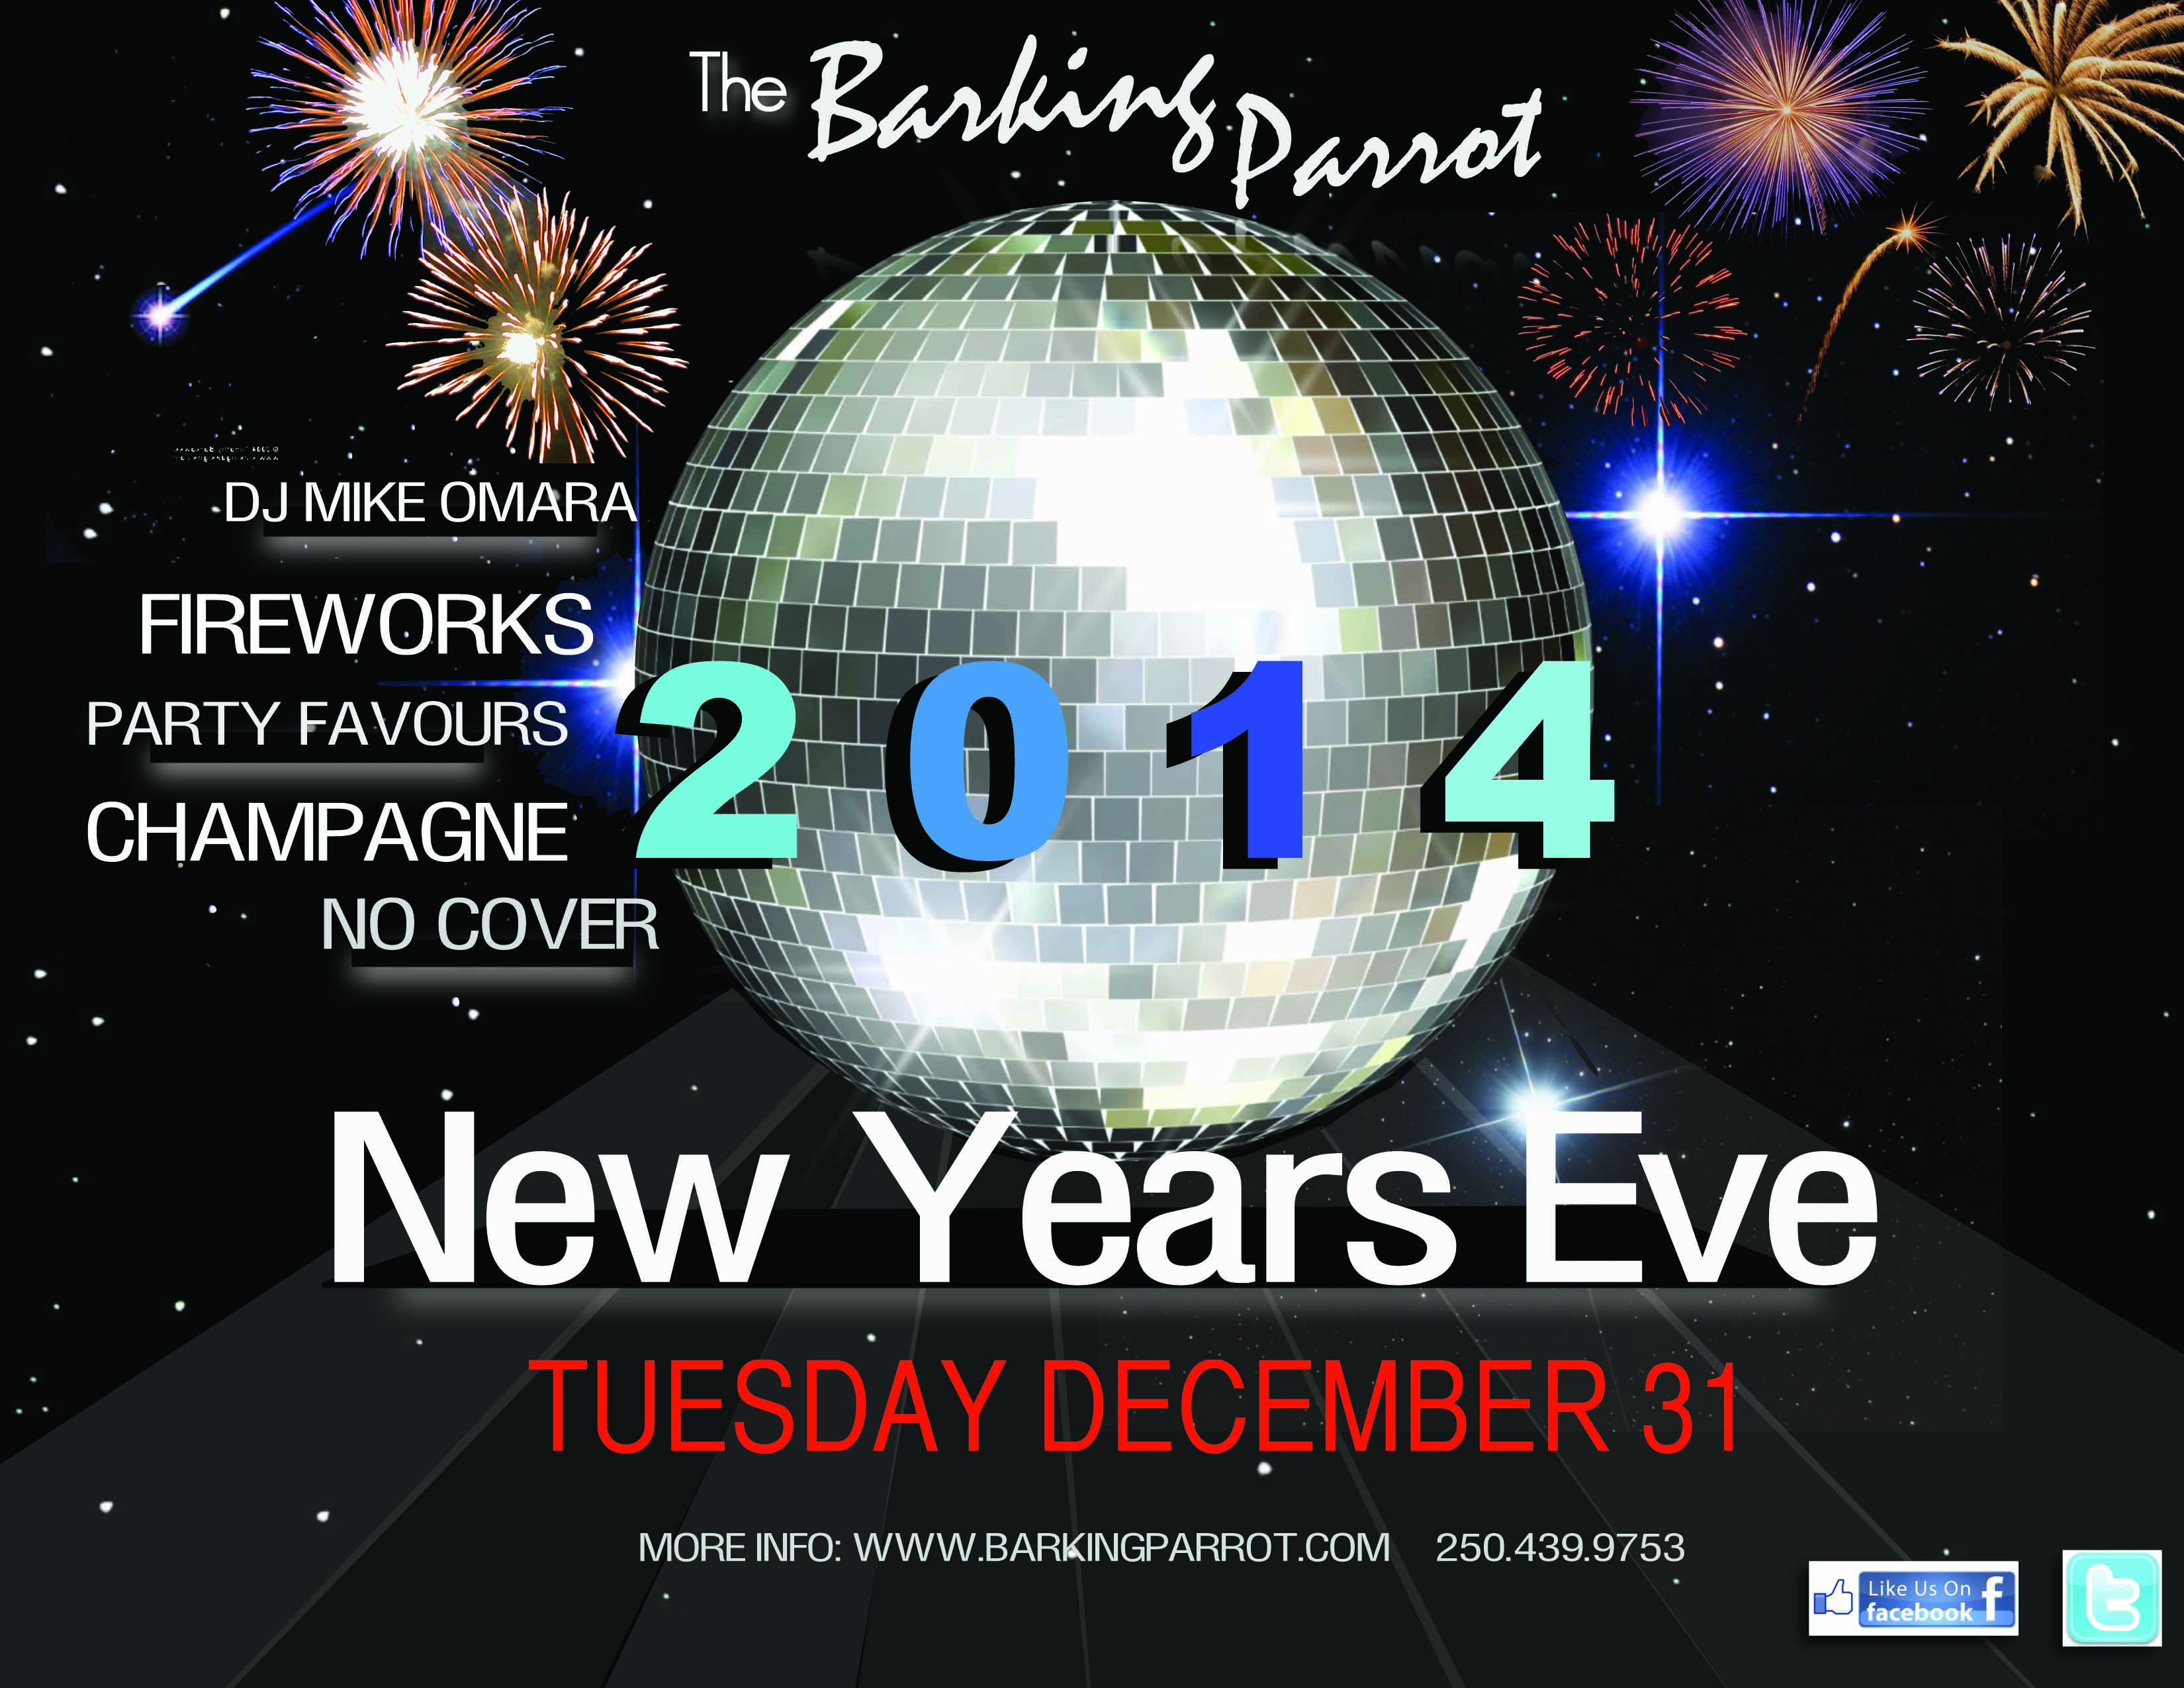 New Years Eve in the Barking Parrot!